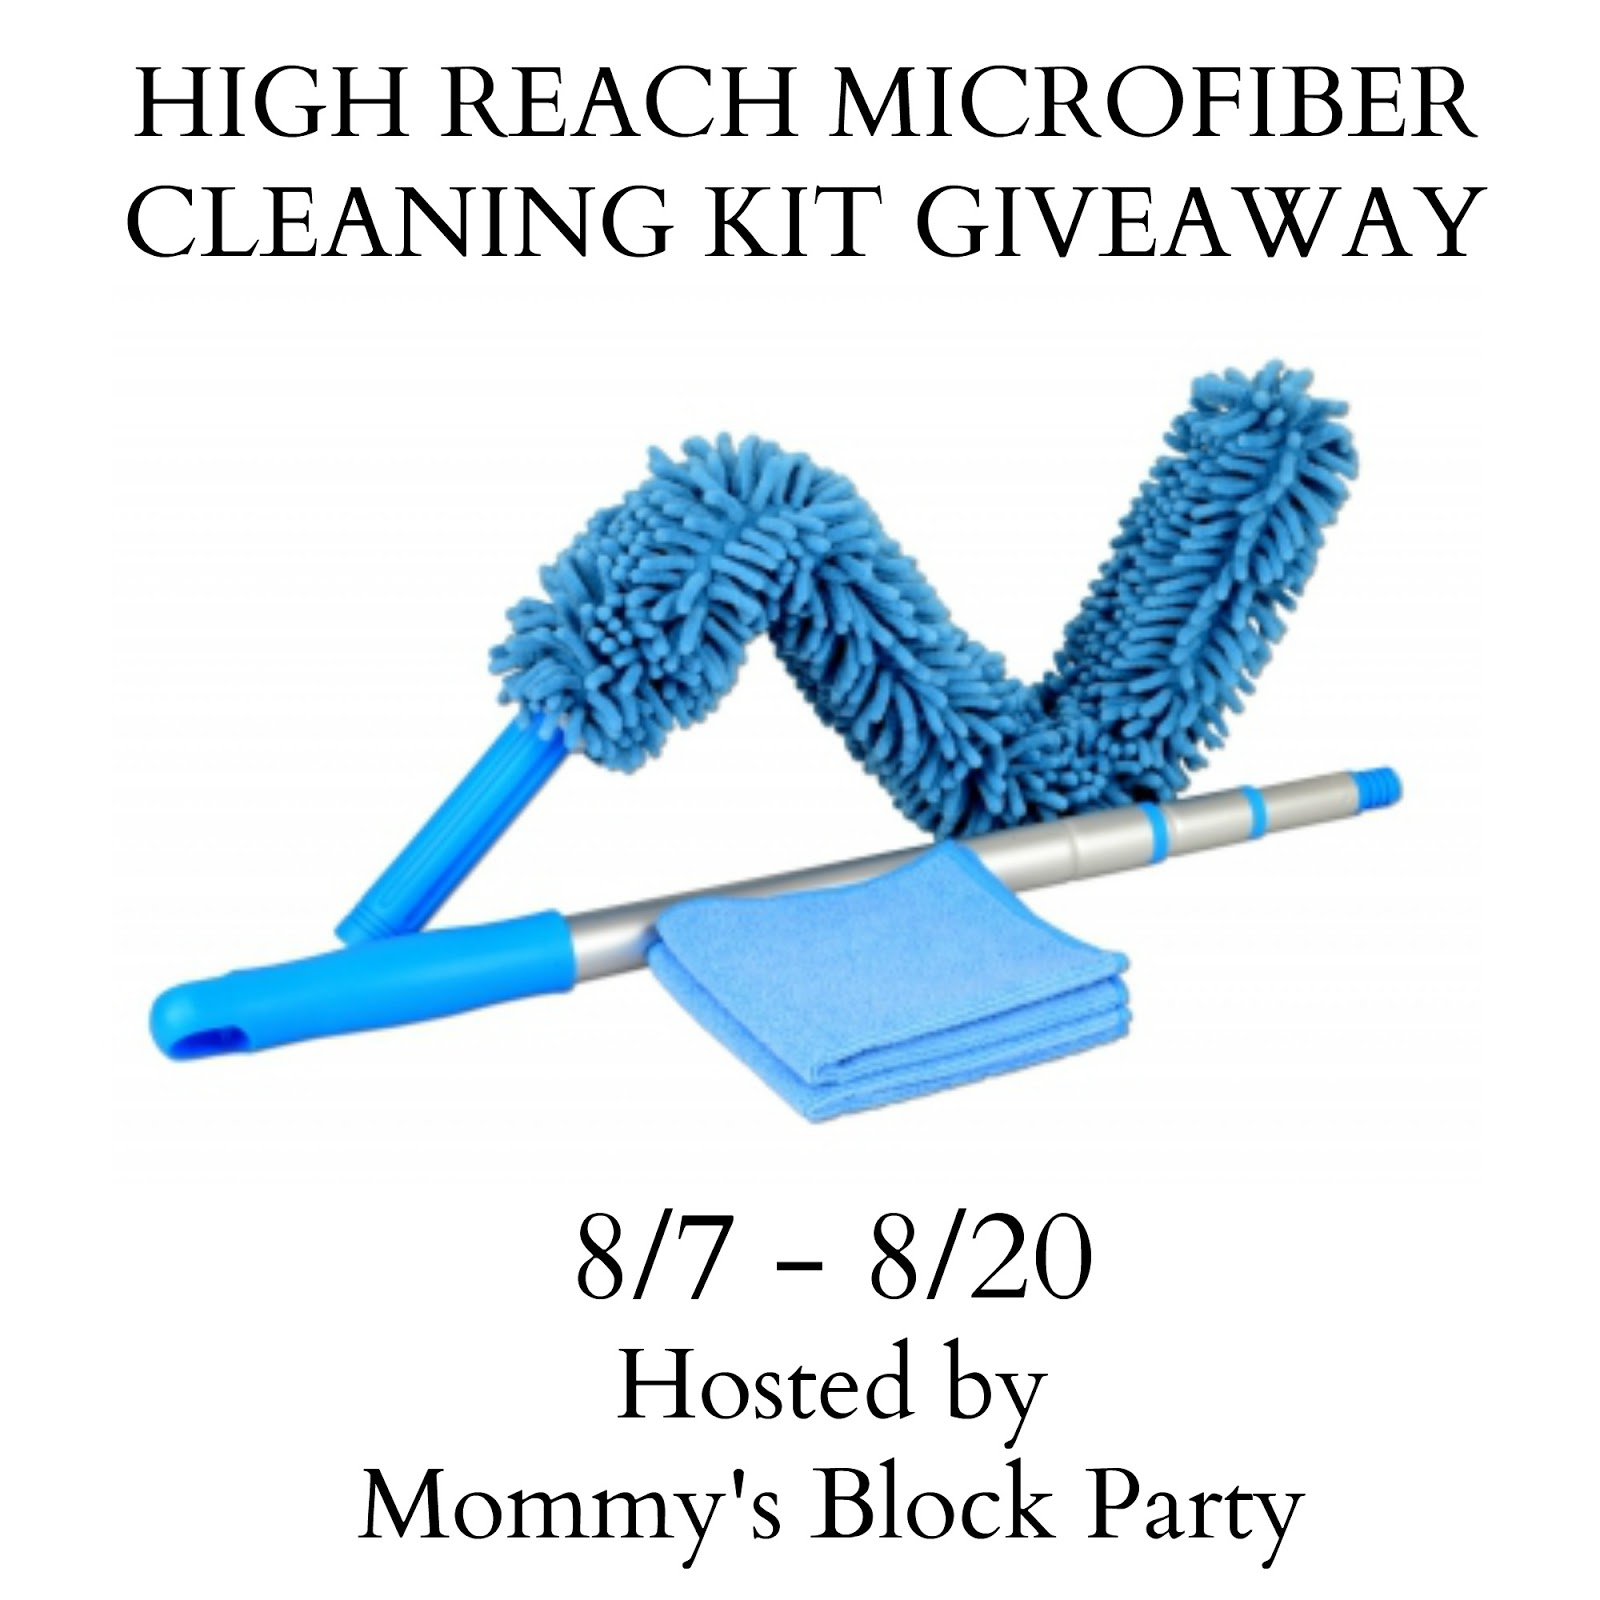 Stay On Top Of Dust With The Microfiber High Reach